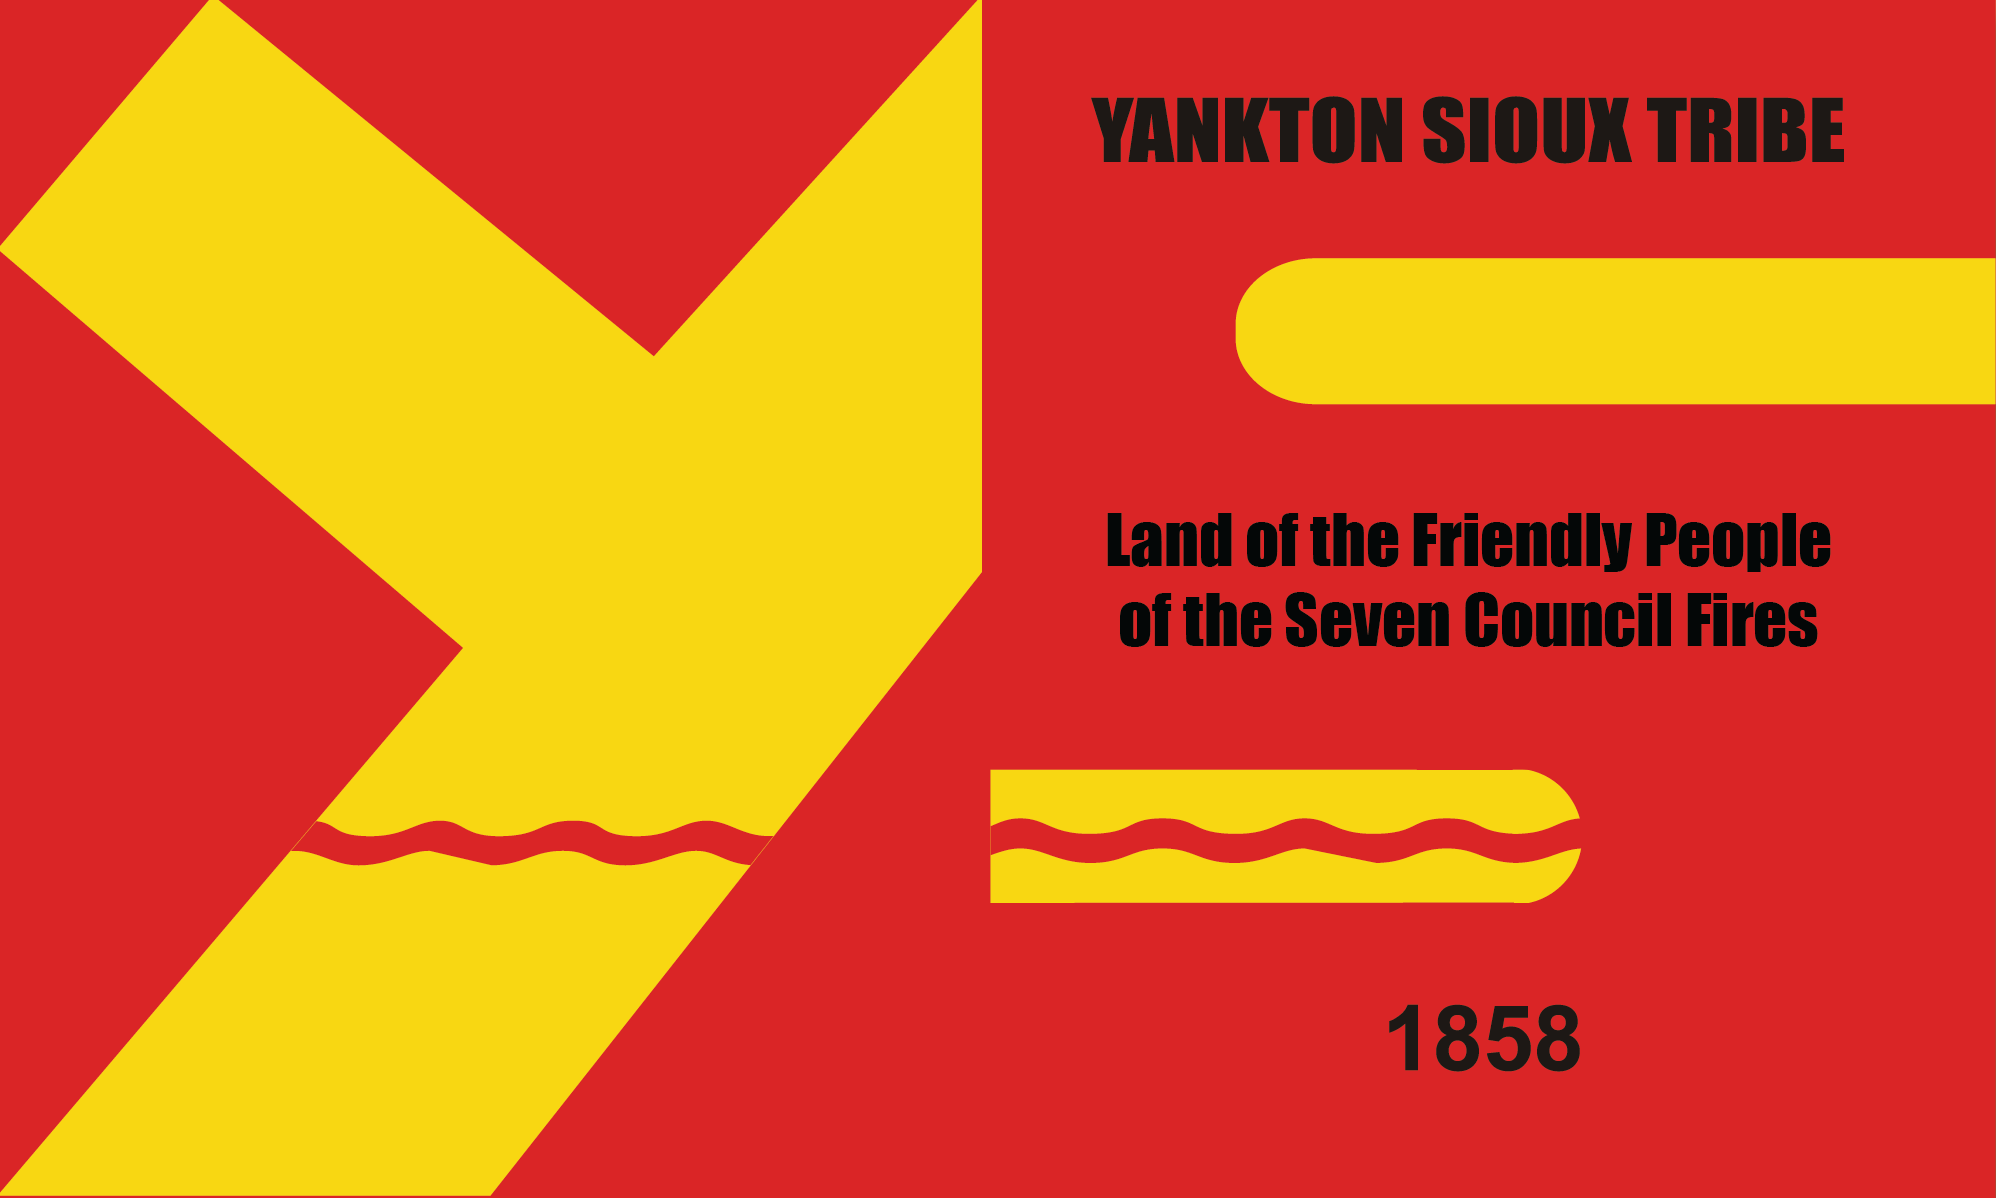 CAIRNS Column: Examining the flag of the Yankton Sioux Tribe